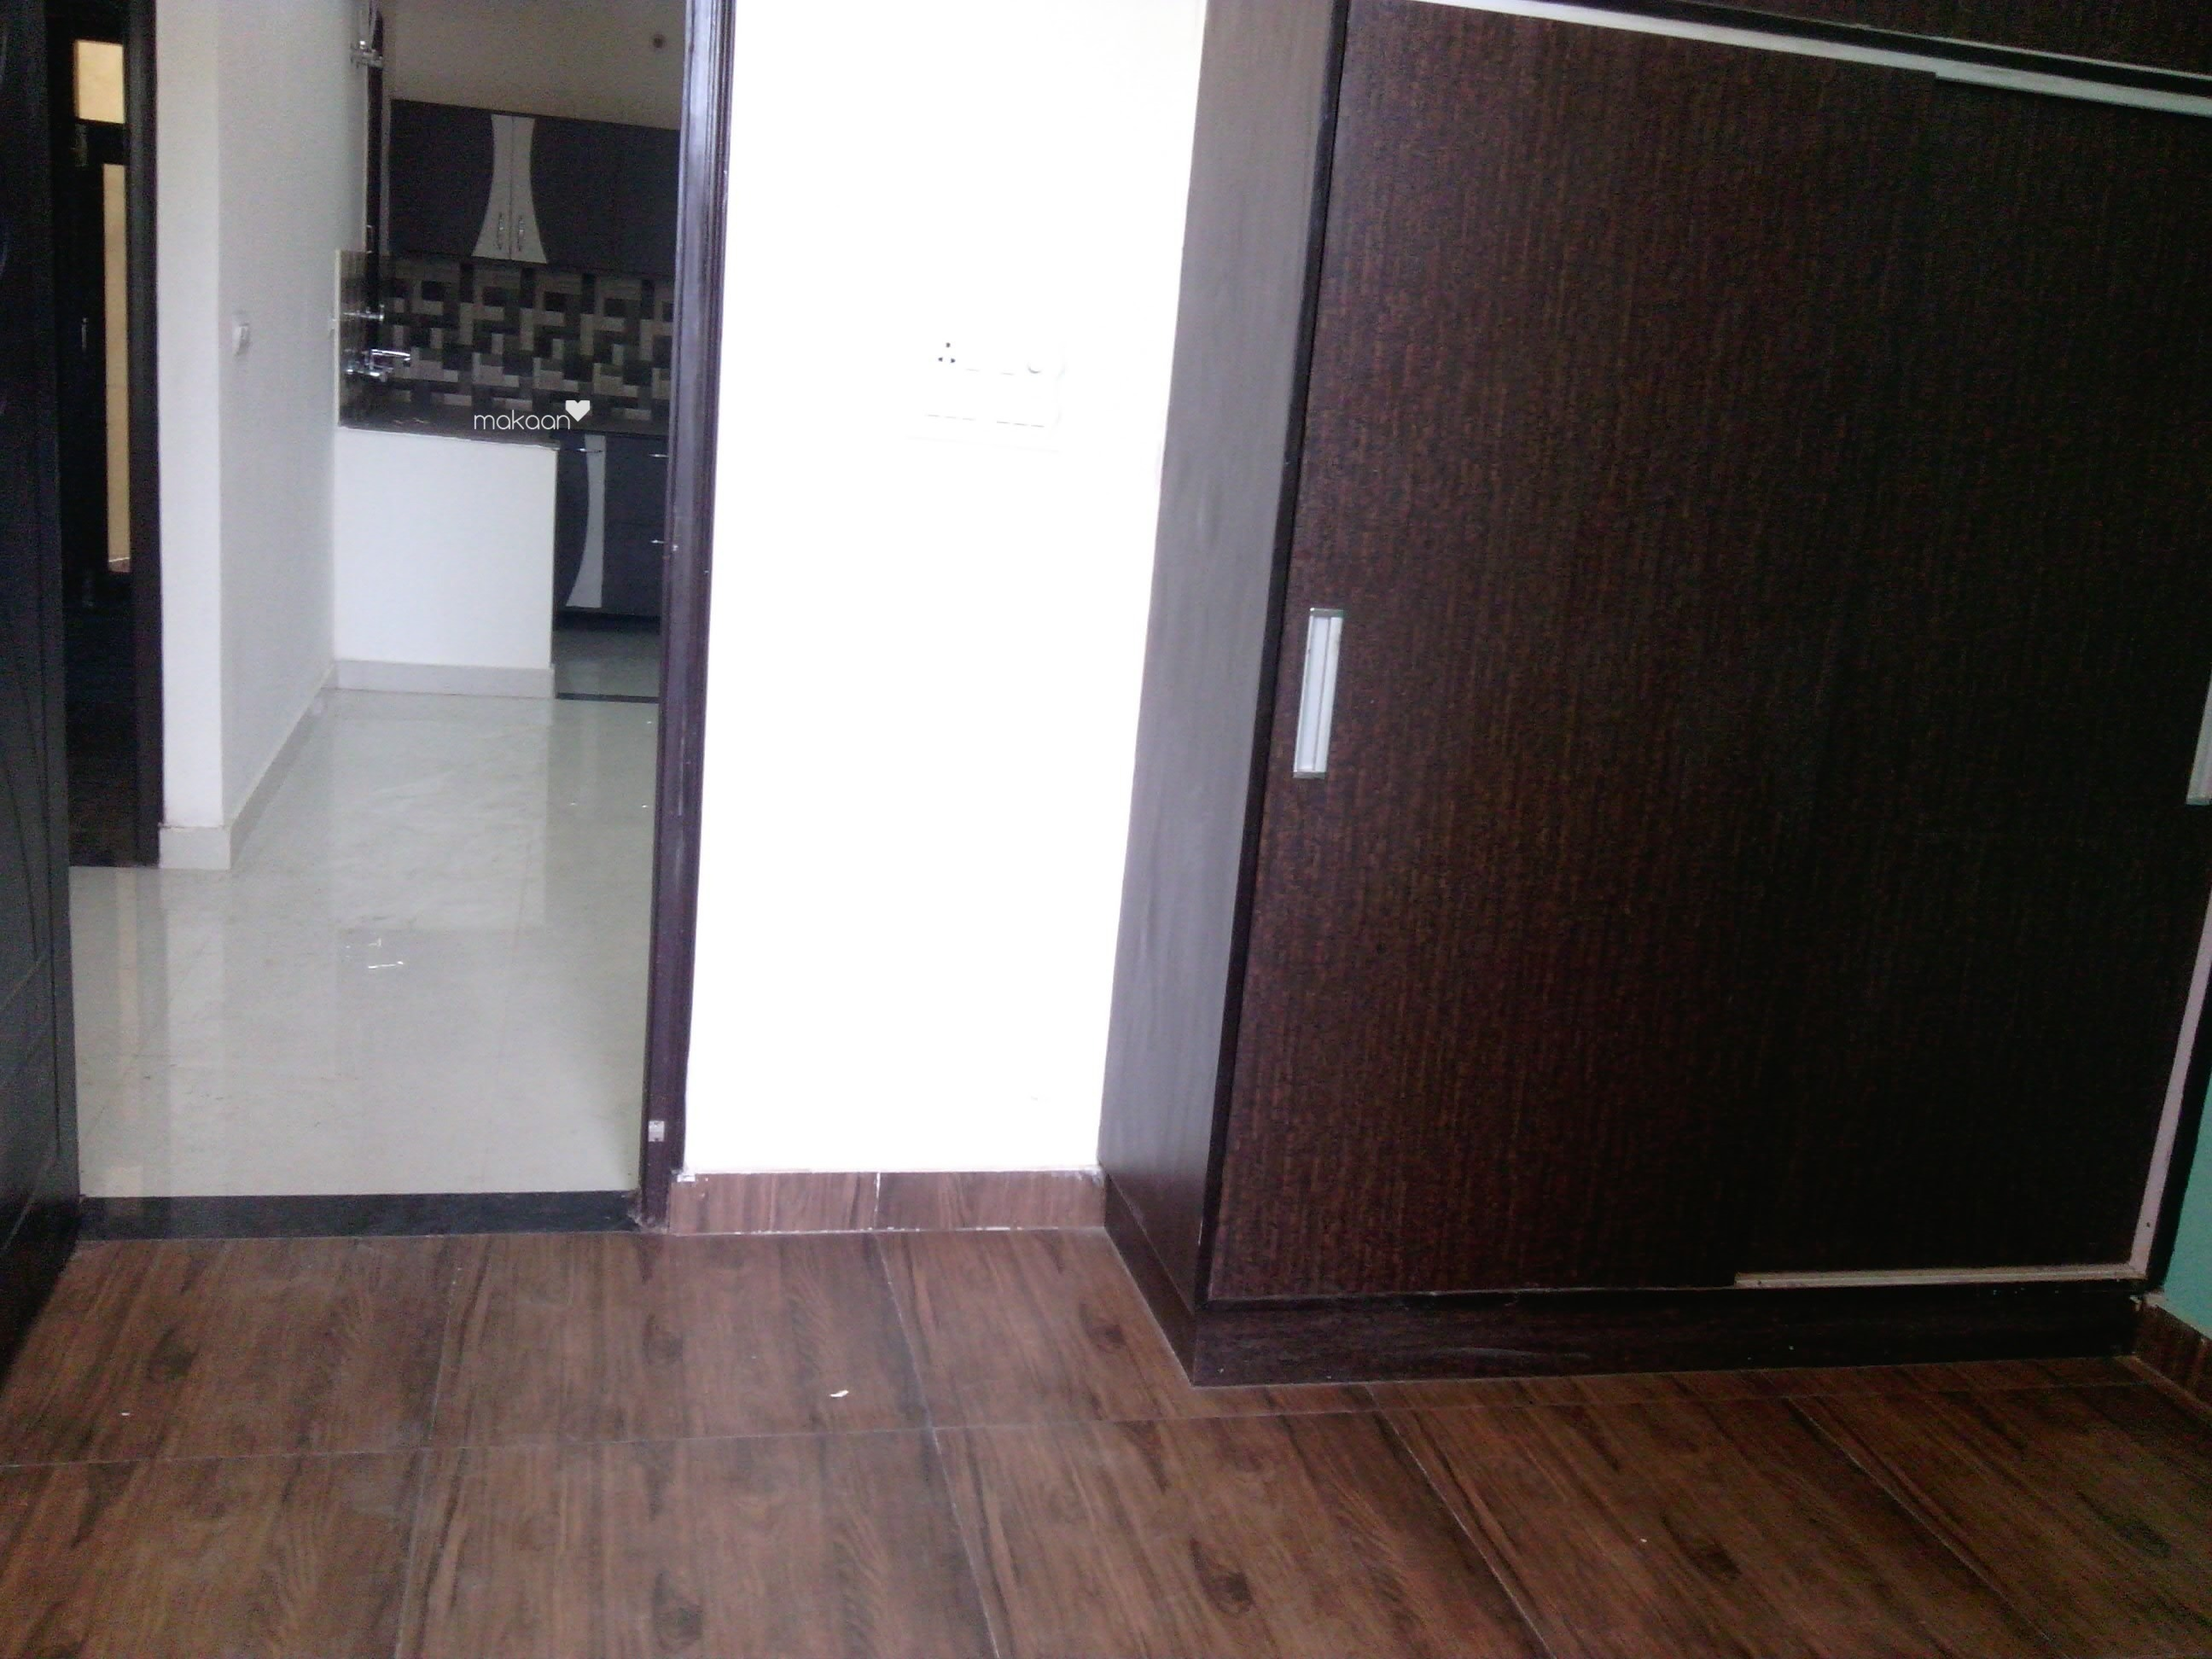 1450 sq ft 3BHK 3BHK+3T (1,450 sq ft) Property By INVESTORS HOUSE PROPMART In Project, gyan khand 1